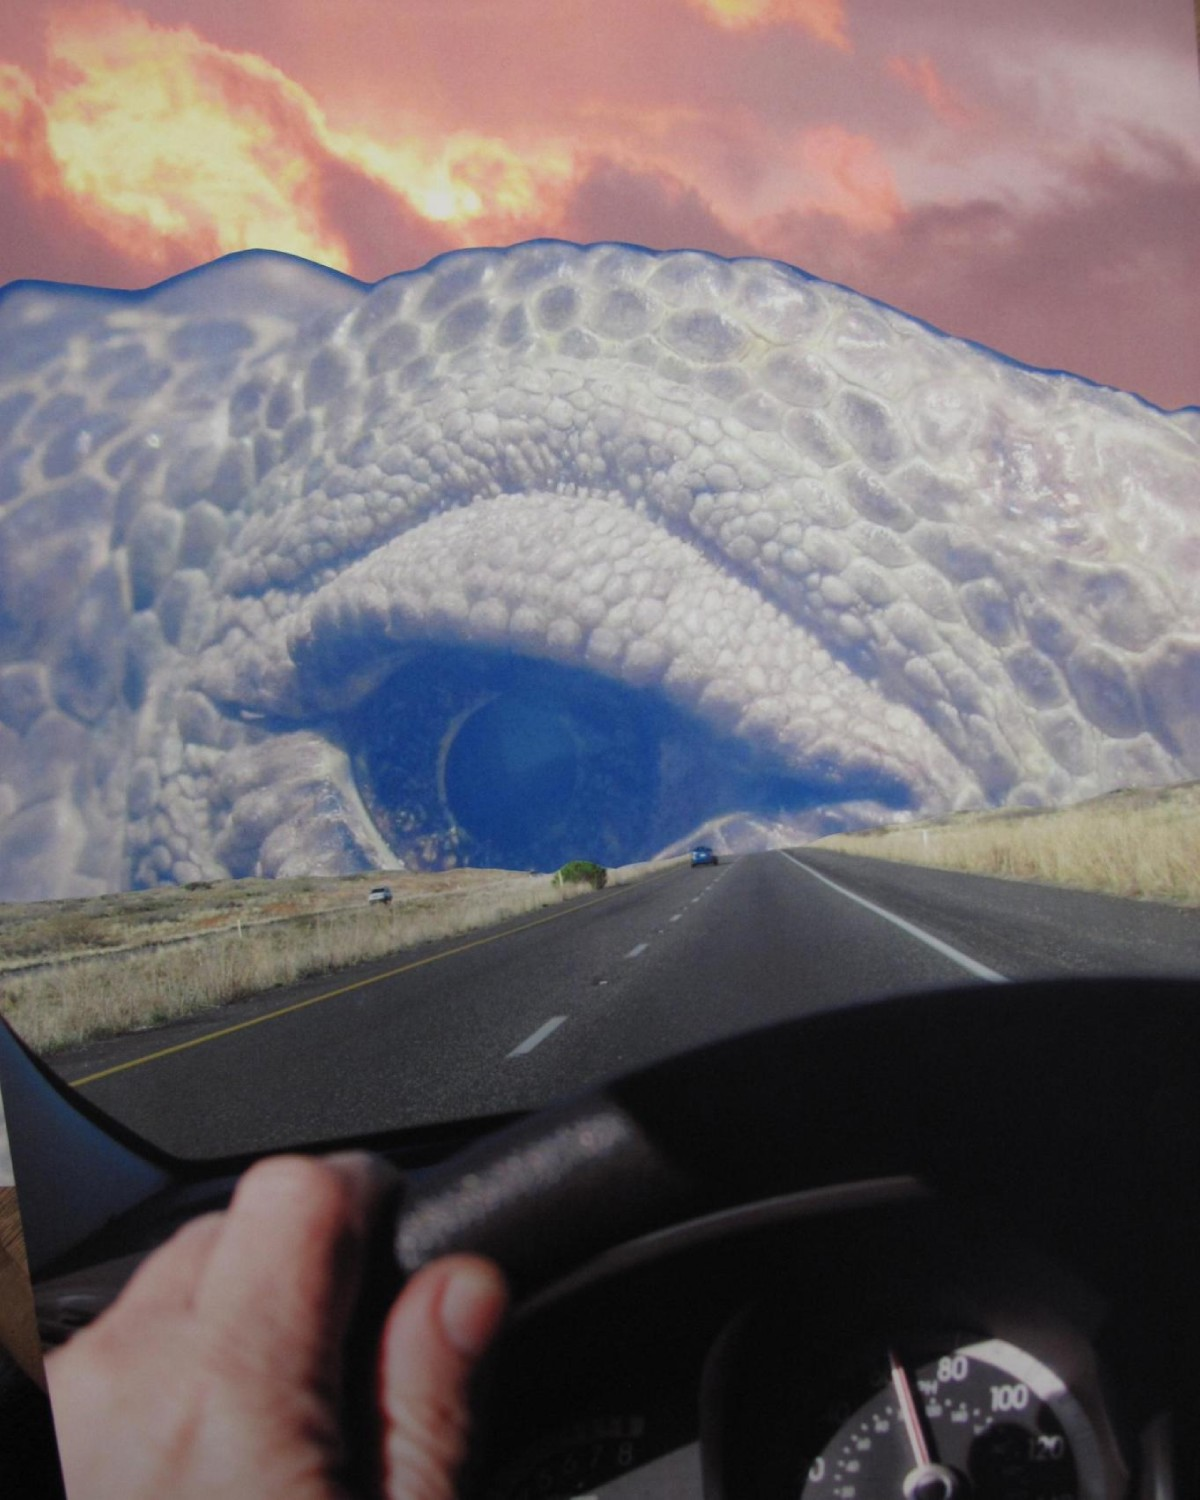 driving into the lizard s eye photo collage by bob dreizler